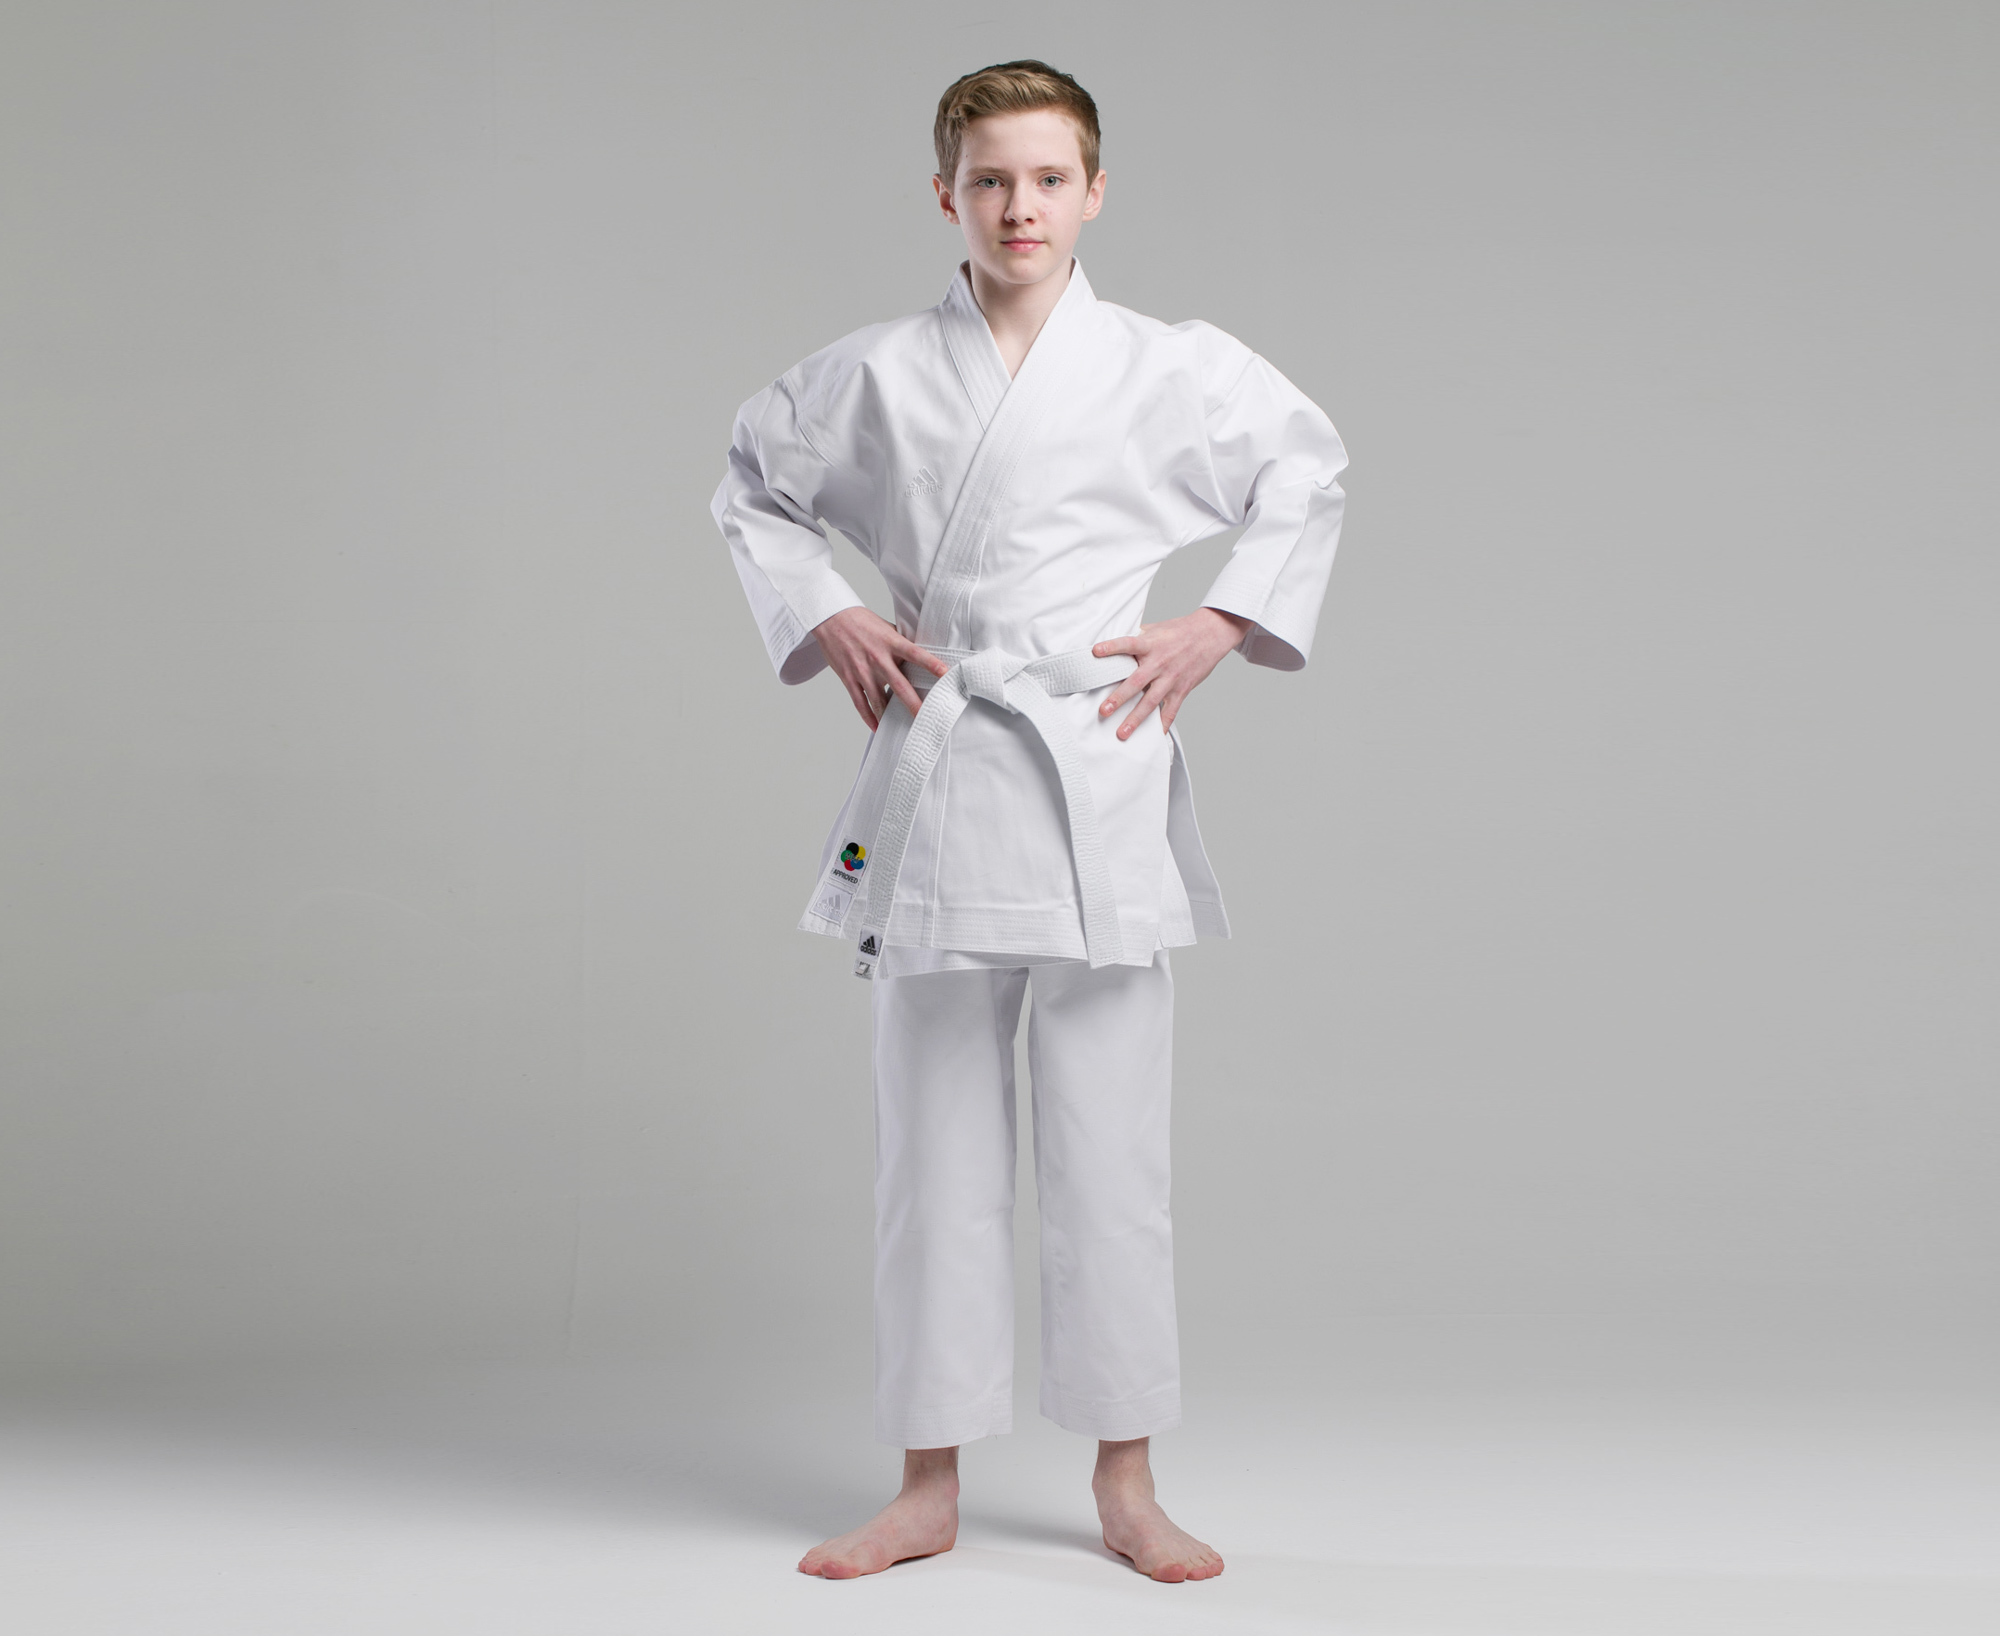 Кимоно КИМОНО ДЛЯ КАРАТЕ KIGAI EUROPEAN CUT WKF БЕЛОЕ kimono_dlya_karate_kigai_european_cut_wkf_beloe.jpg